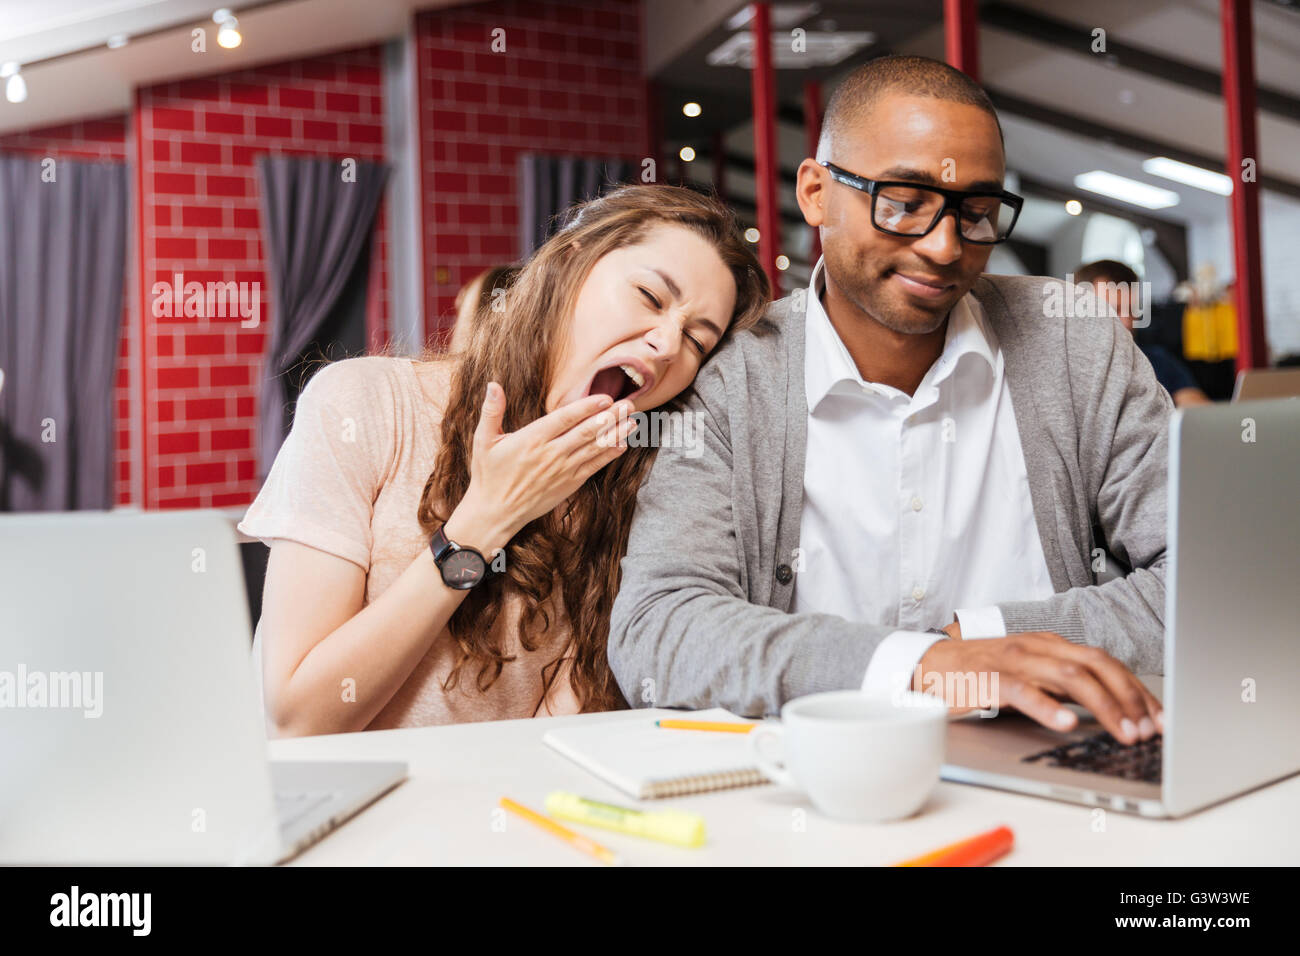 Tired bored young business people yawning and working with laptop in office - Stock Image